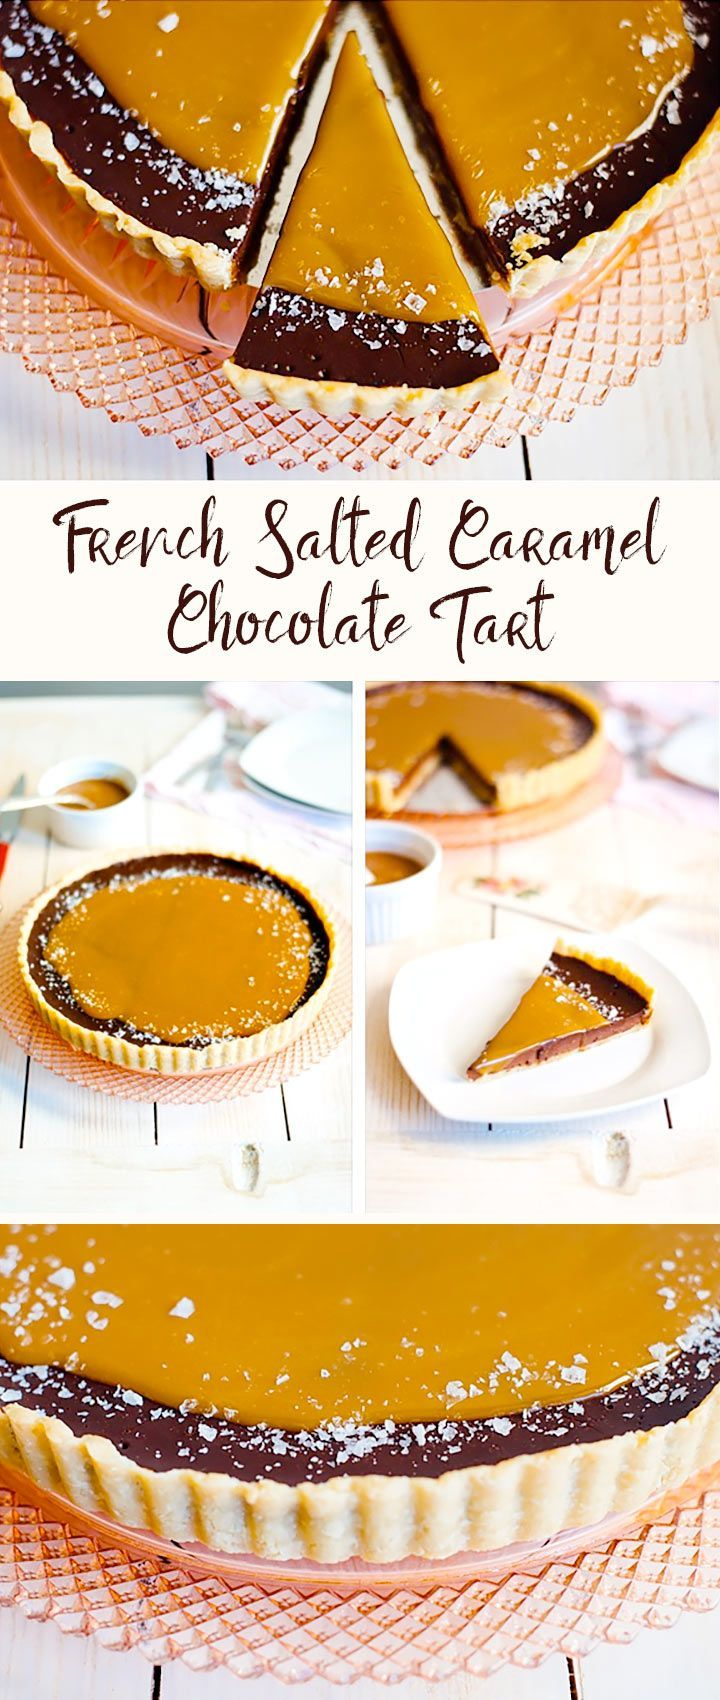 Photo of French Salted Caramel Chocolate Tart | The Hungry Traveler